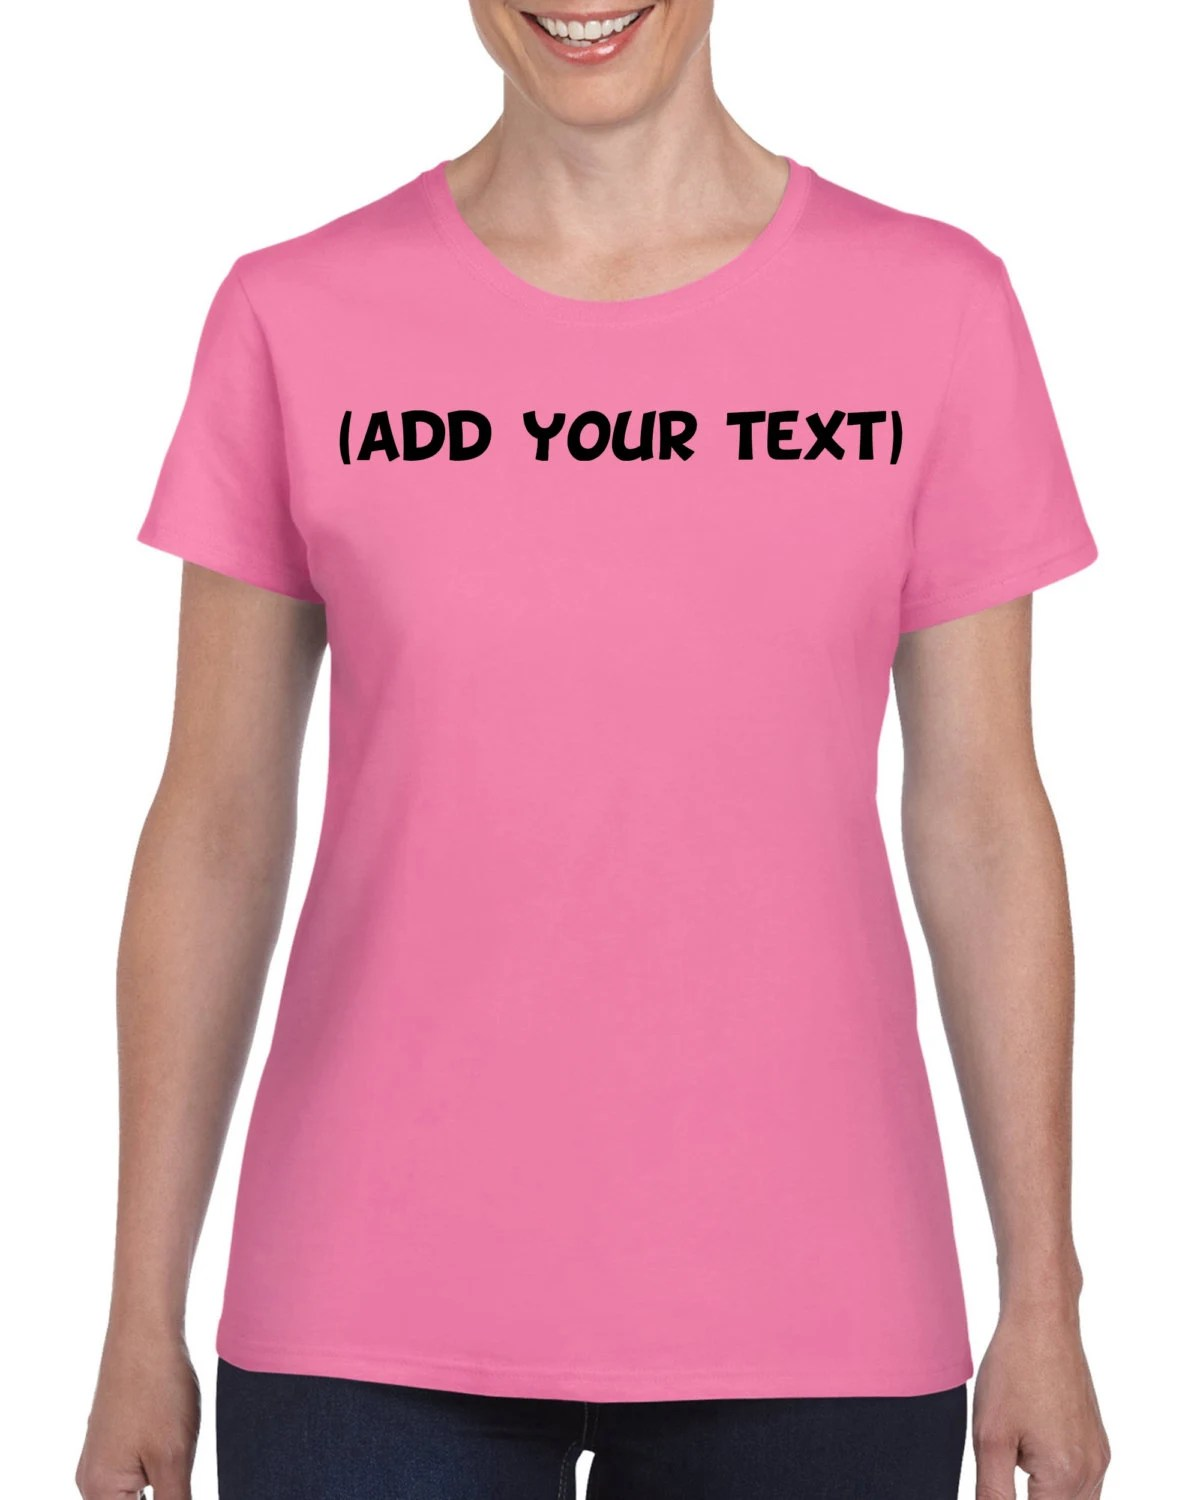 Personalized T-Shirt  Add your own text  Custom T-shirt  image 1